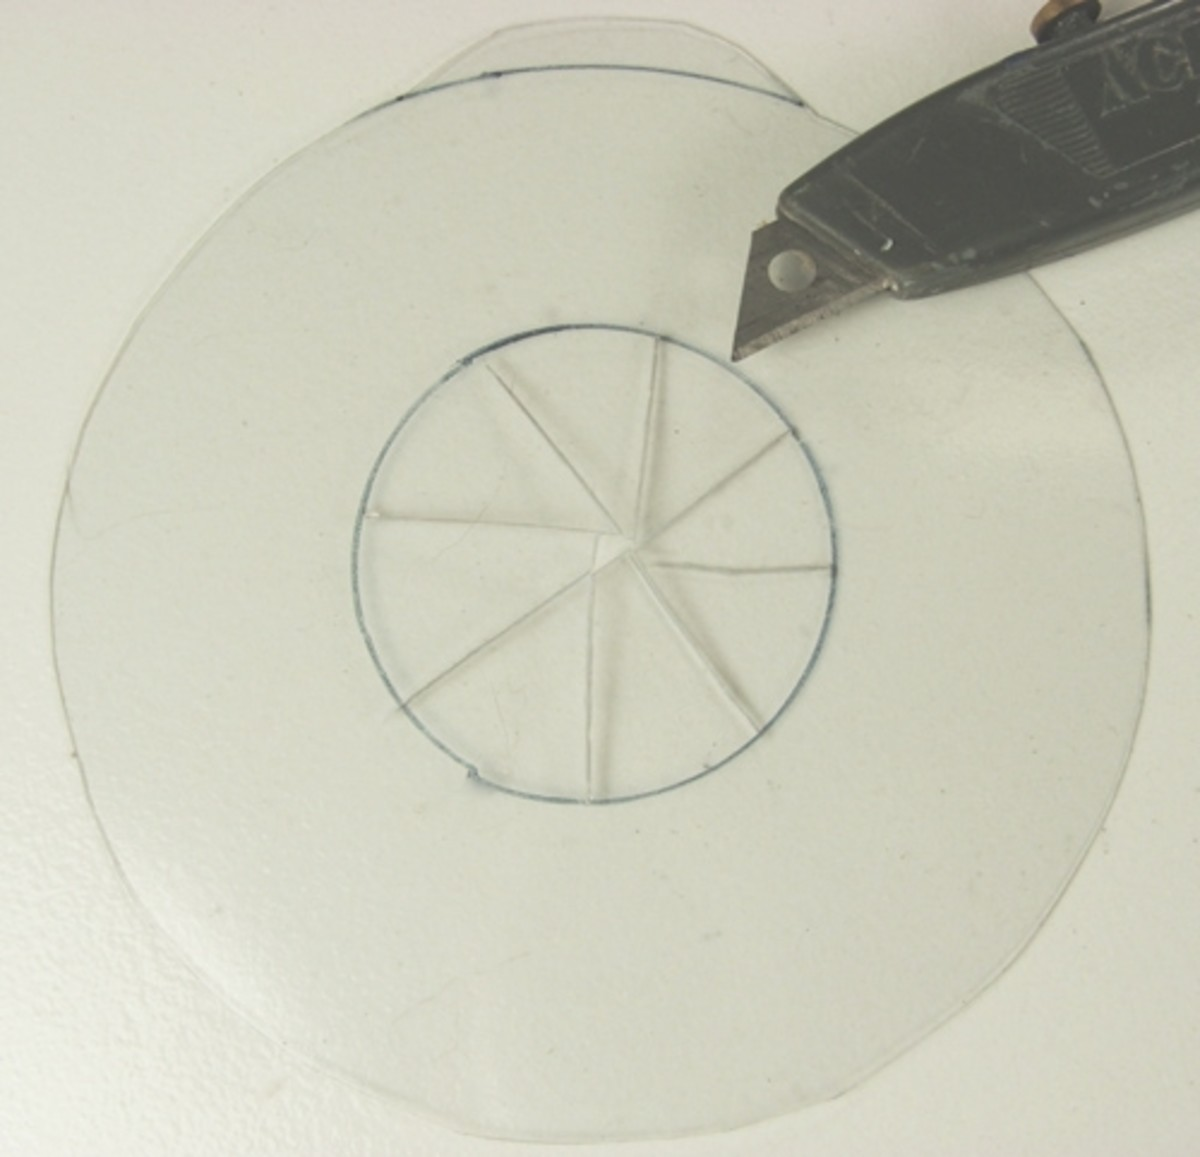 2. Using scissors or an razor blade knife cut out the large circle. To remove the center section first cut a spoke like pattern within the circle template then remove the small sections. Clean the plastic doughnut of all traces of the marking pen usi